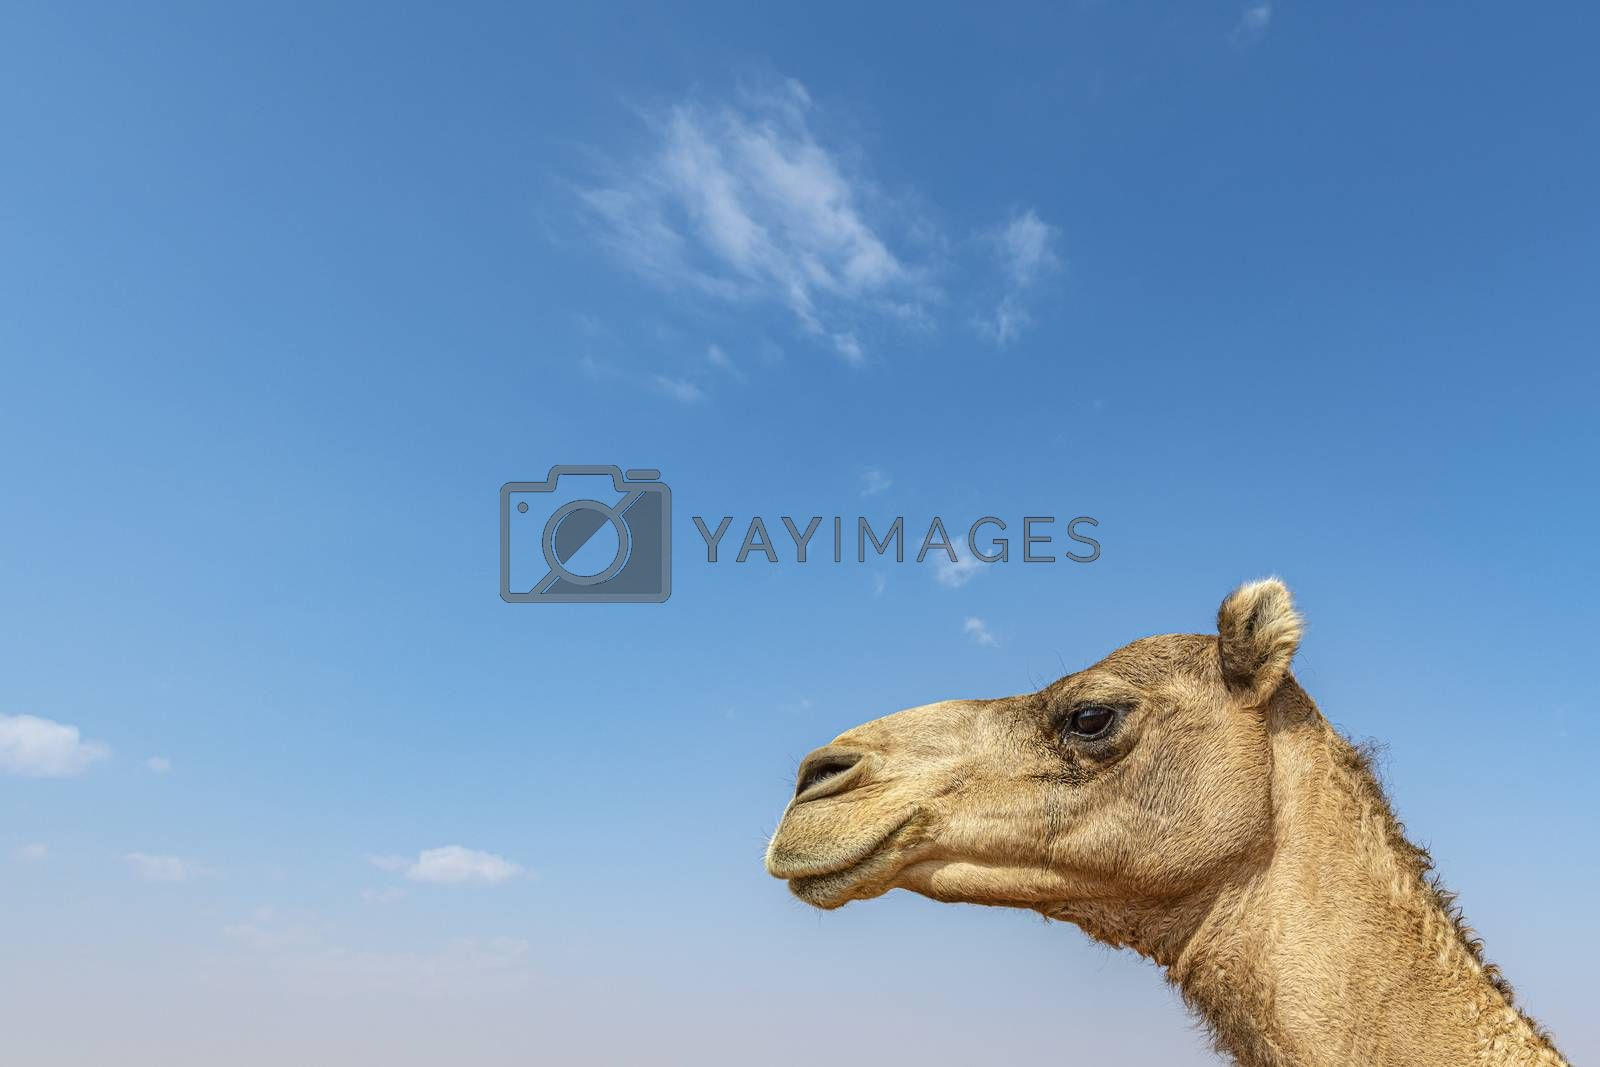 Closeup of Camel head against blue sky with large copy space